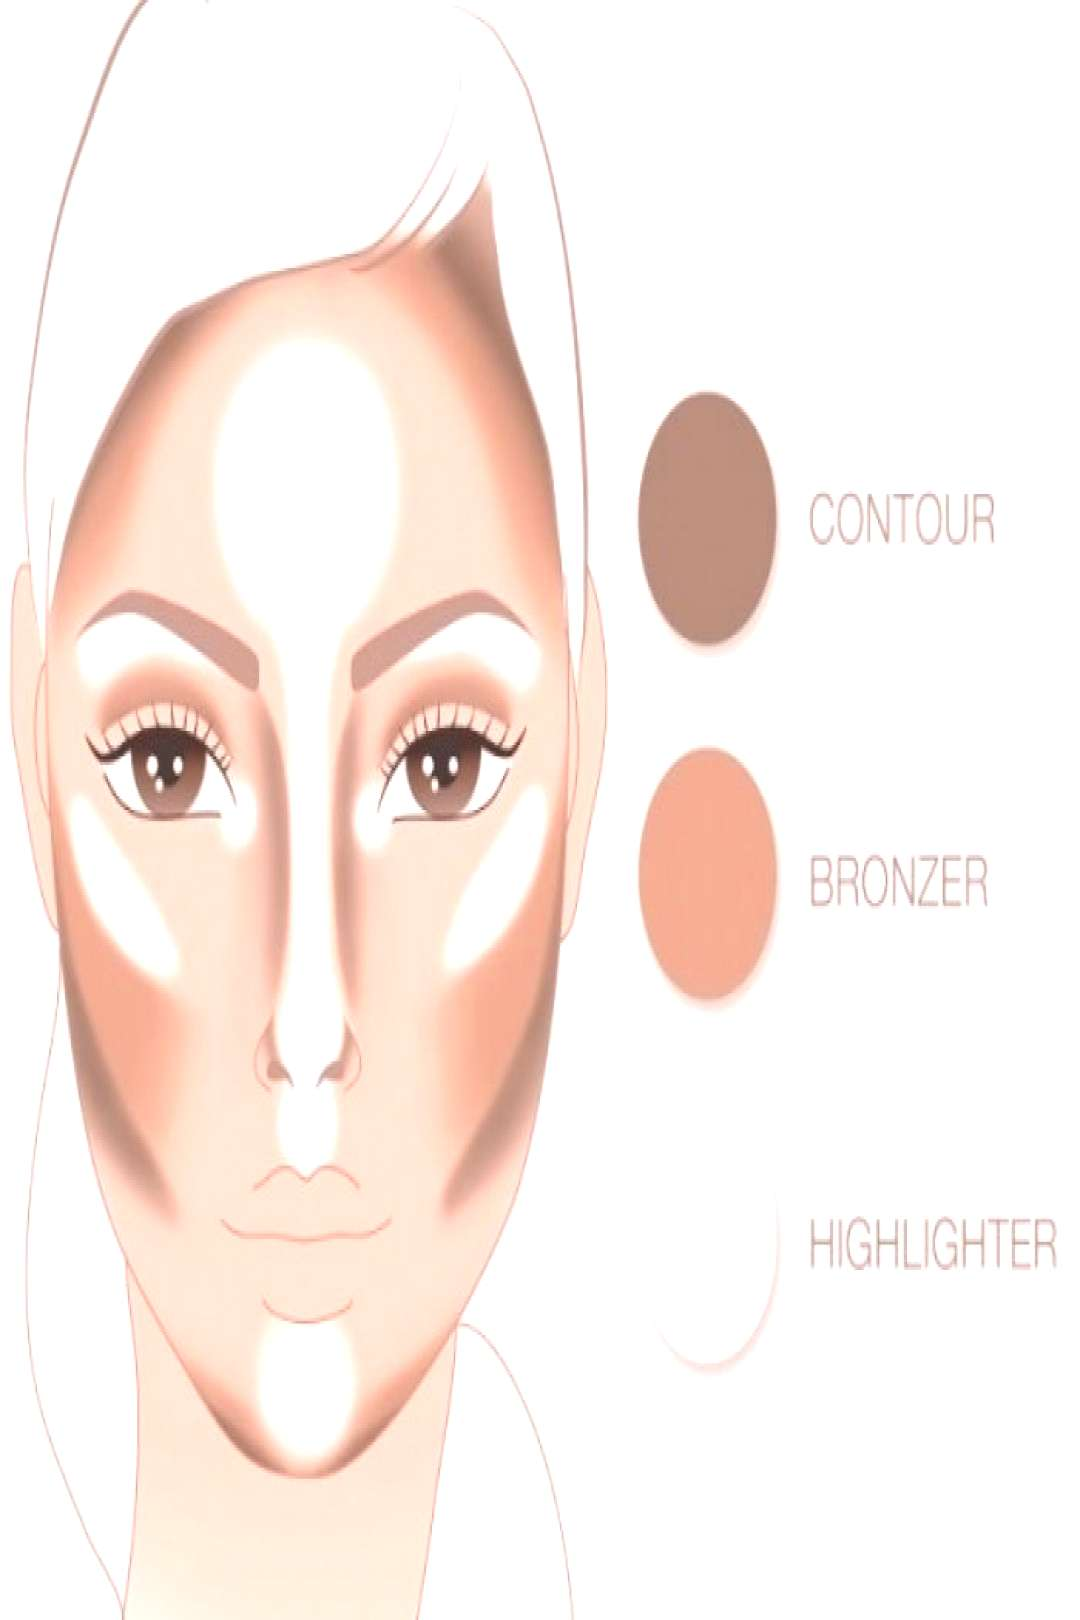 1001 tips and tricks to achieve makeup contouring#achieve